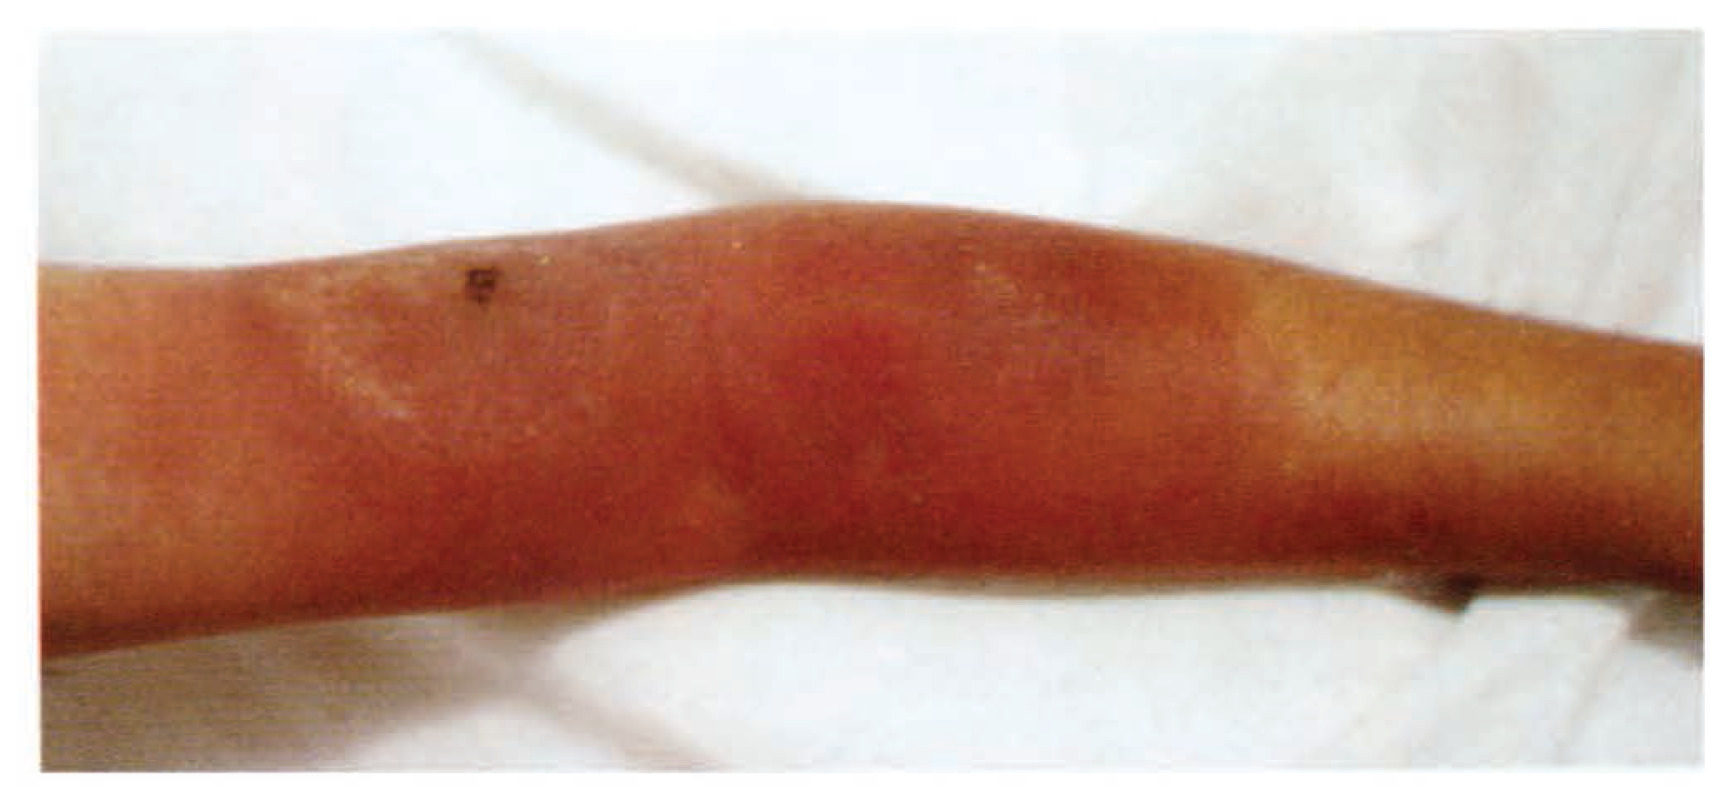 Erythema Migrans - Case Report From Dammam Central Hospital | Annals